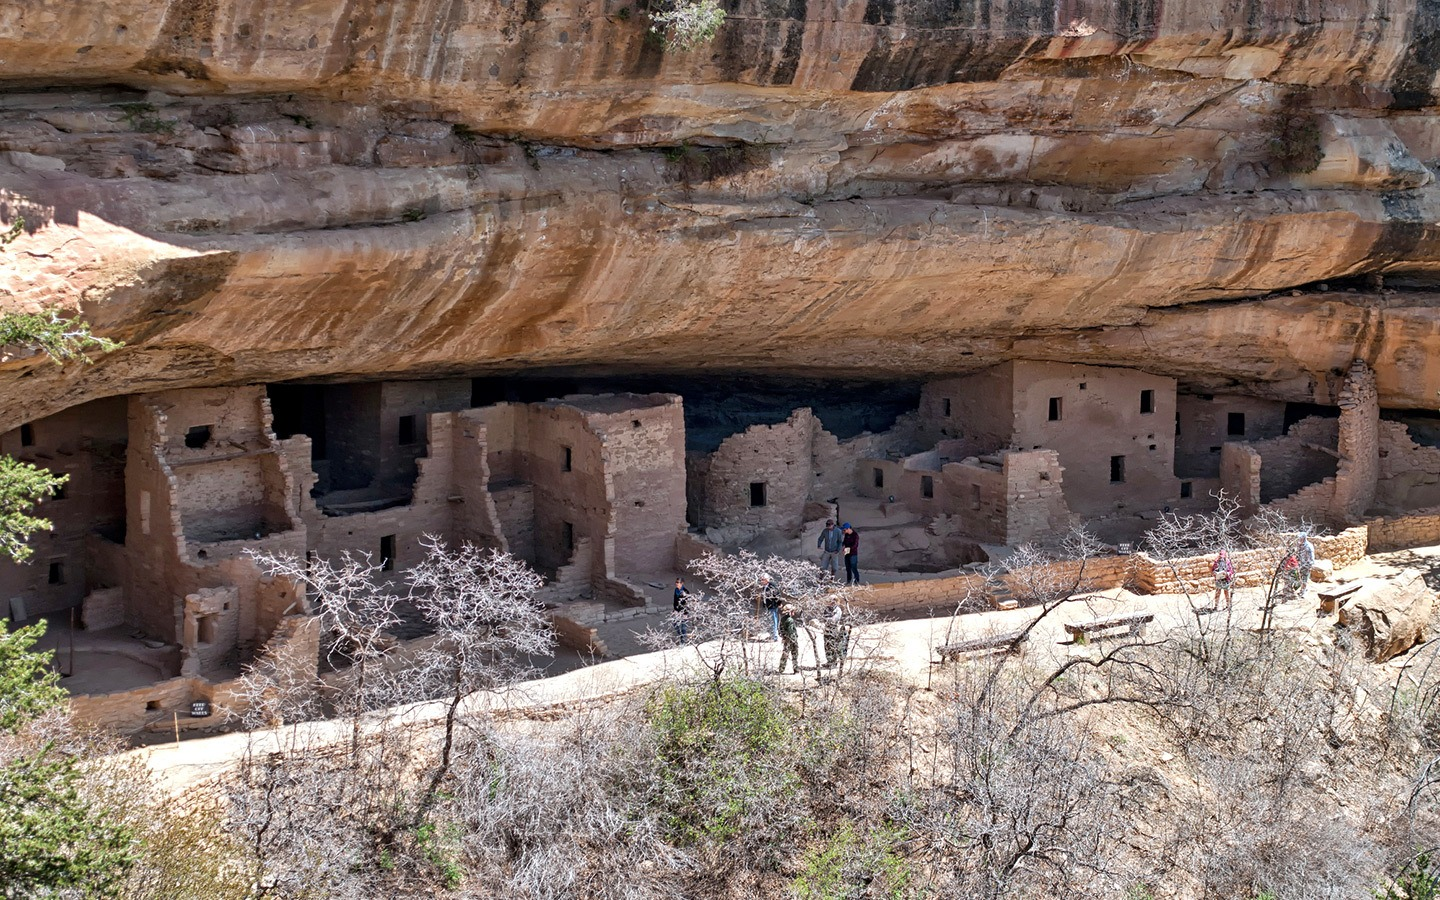 Mysteries of the cliff houses at Mesa Verde National Park, Colorado